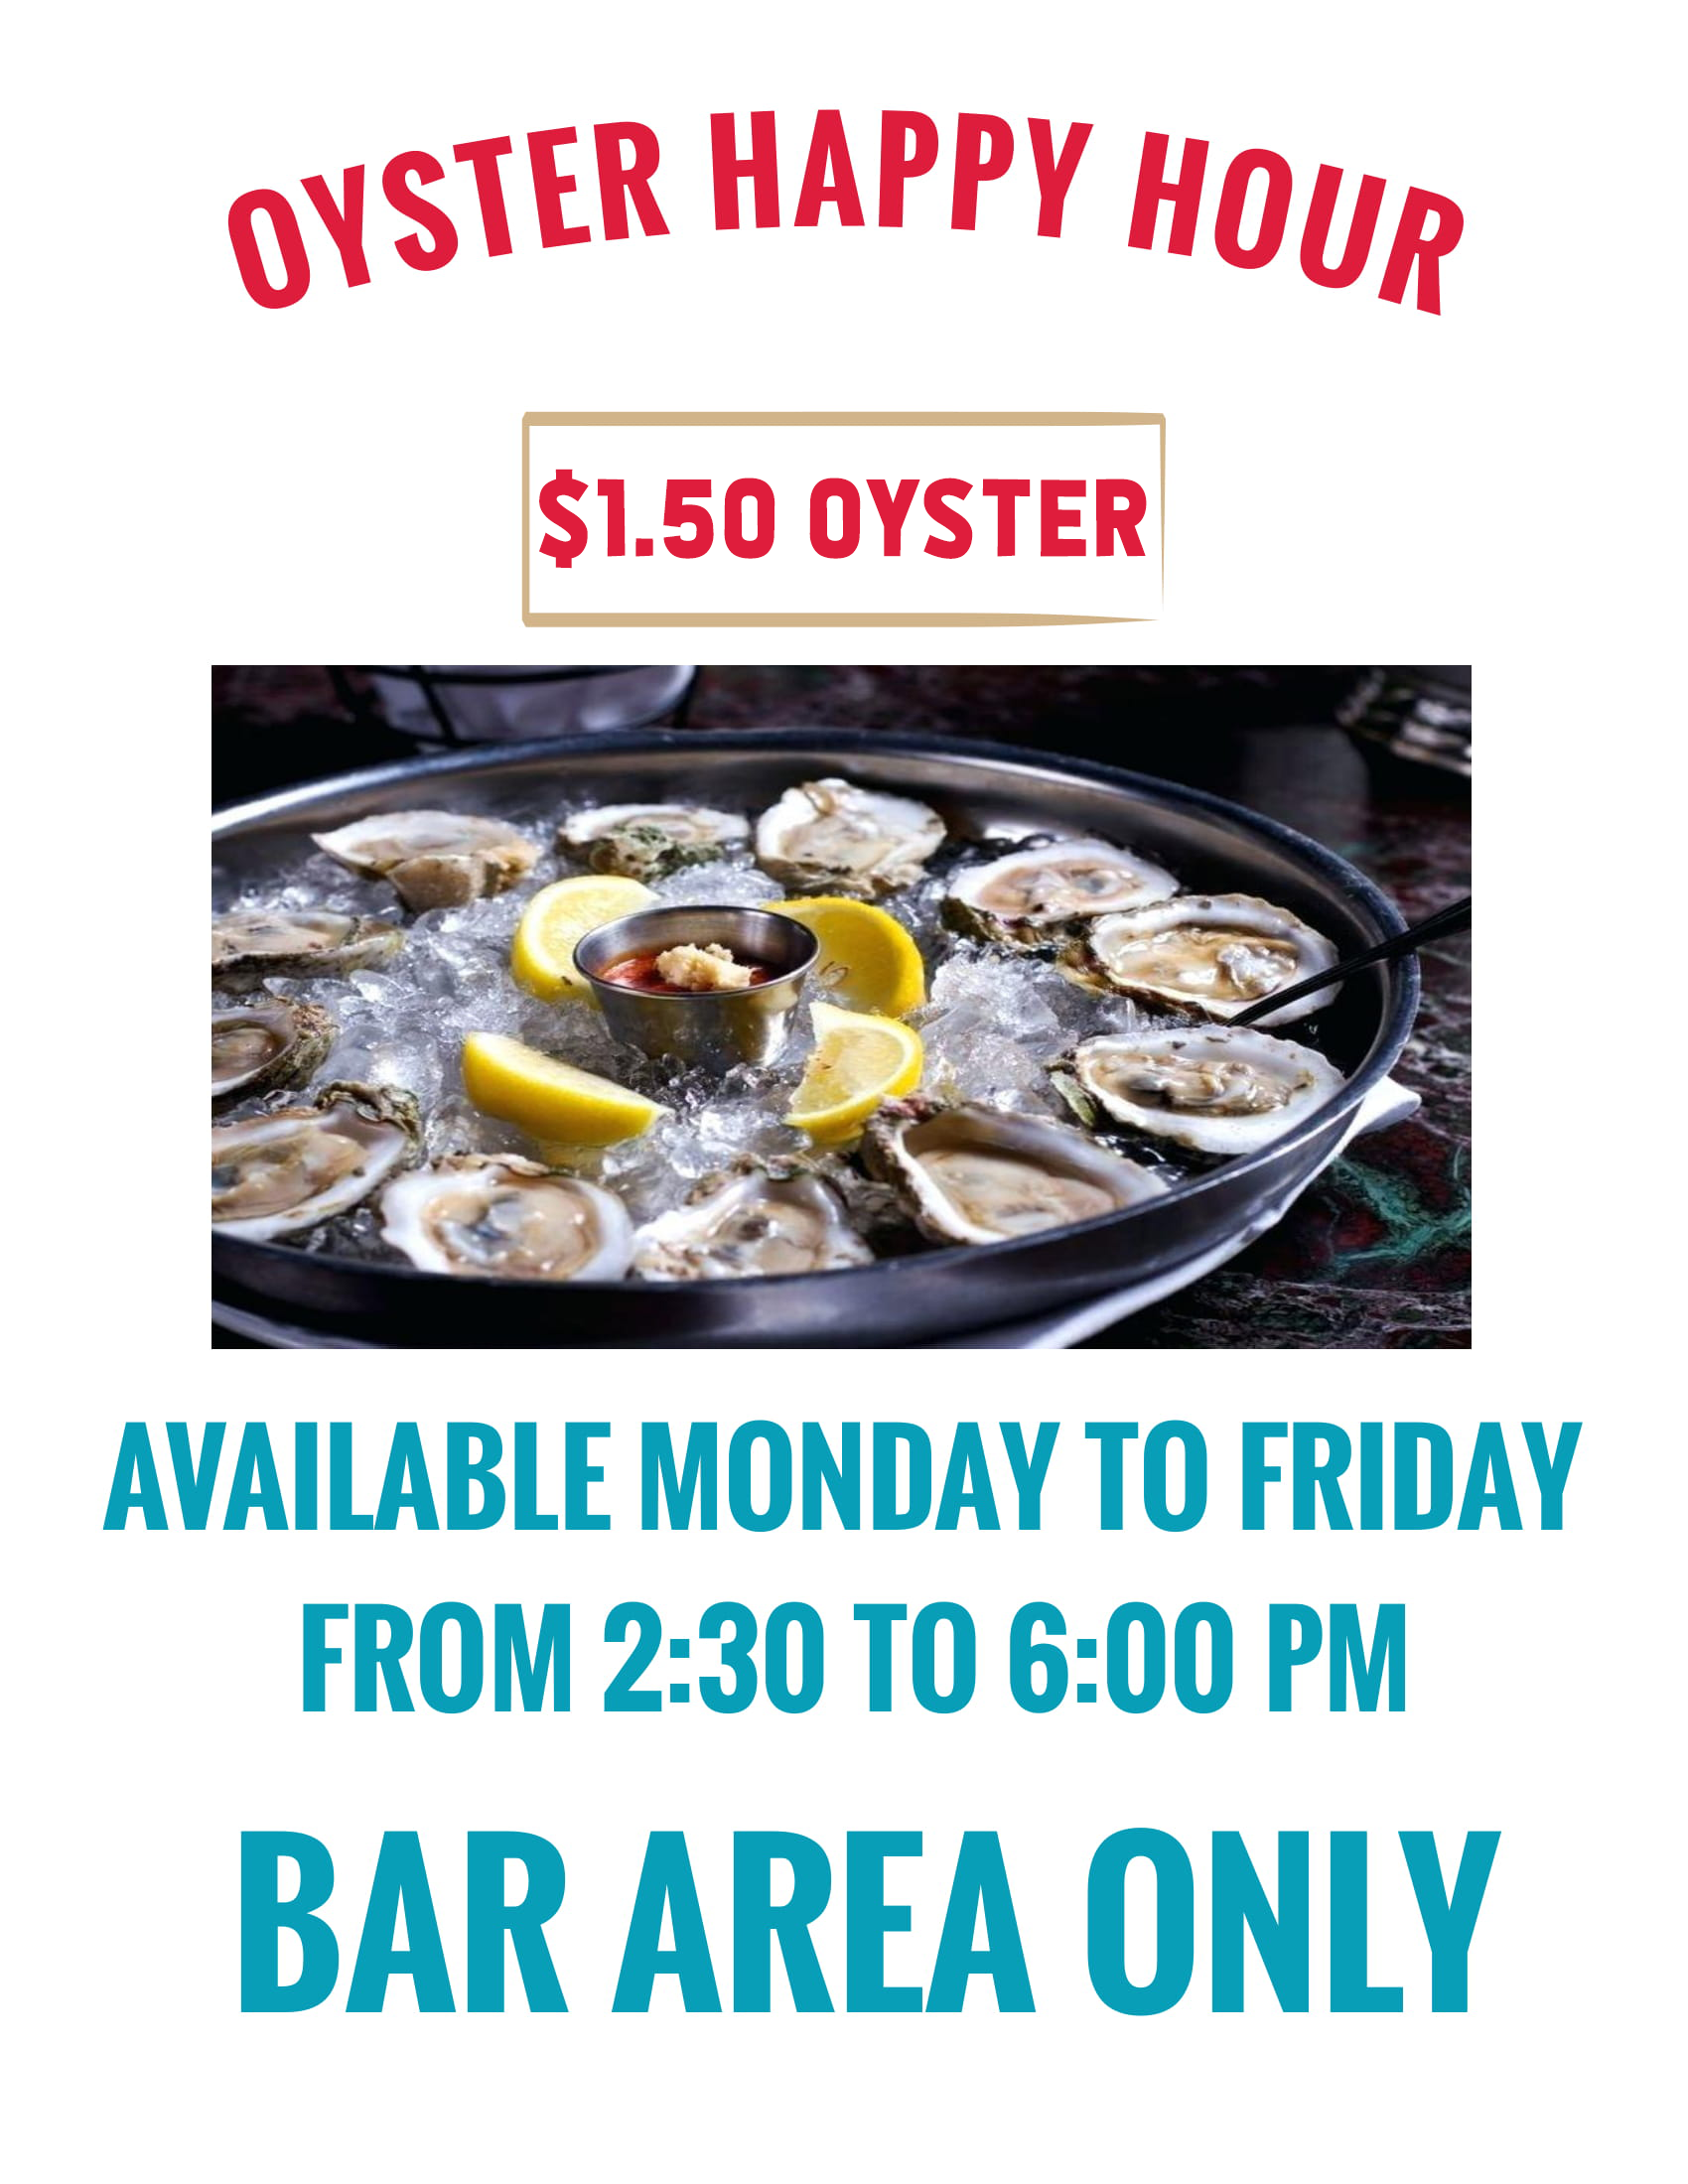 Oyster happy house. $1.50 oysters. Available Monday to Friday from 2:30 pm to 6:00 pm in the bar area only.